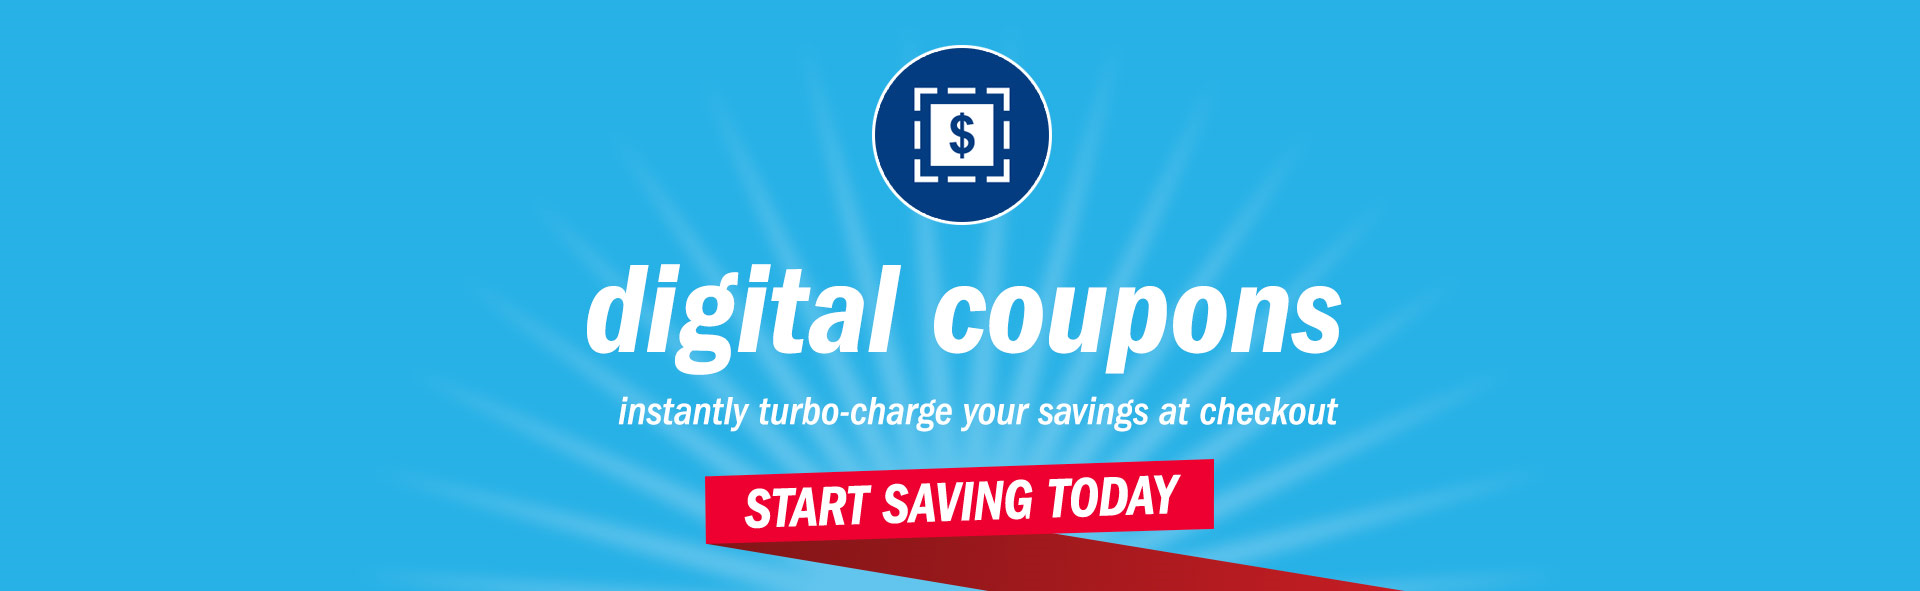 meijer mperks digital coupons - instant savings at checkout.